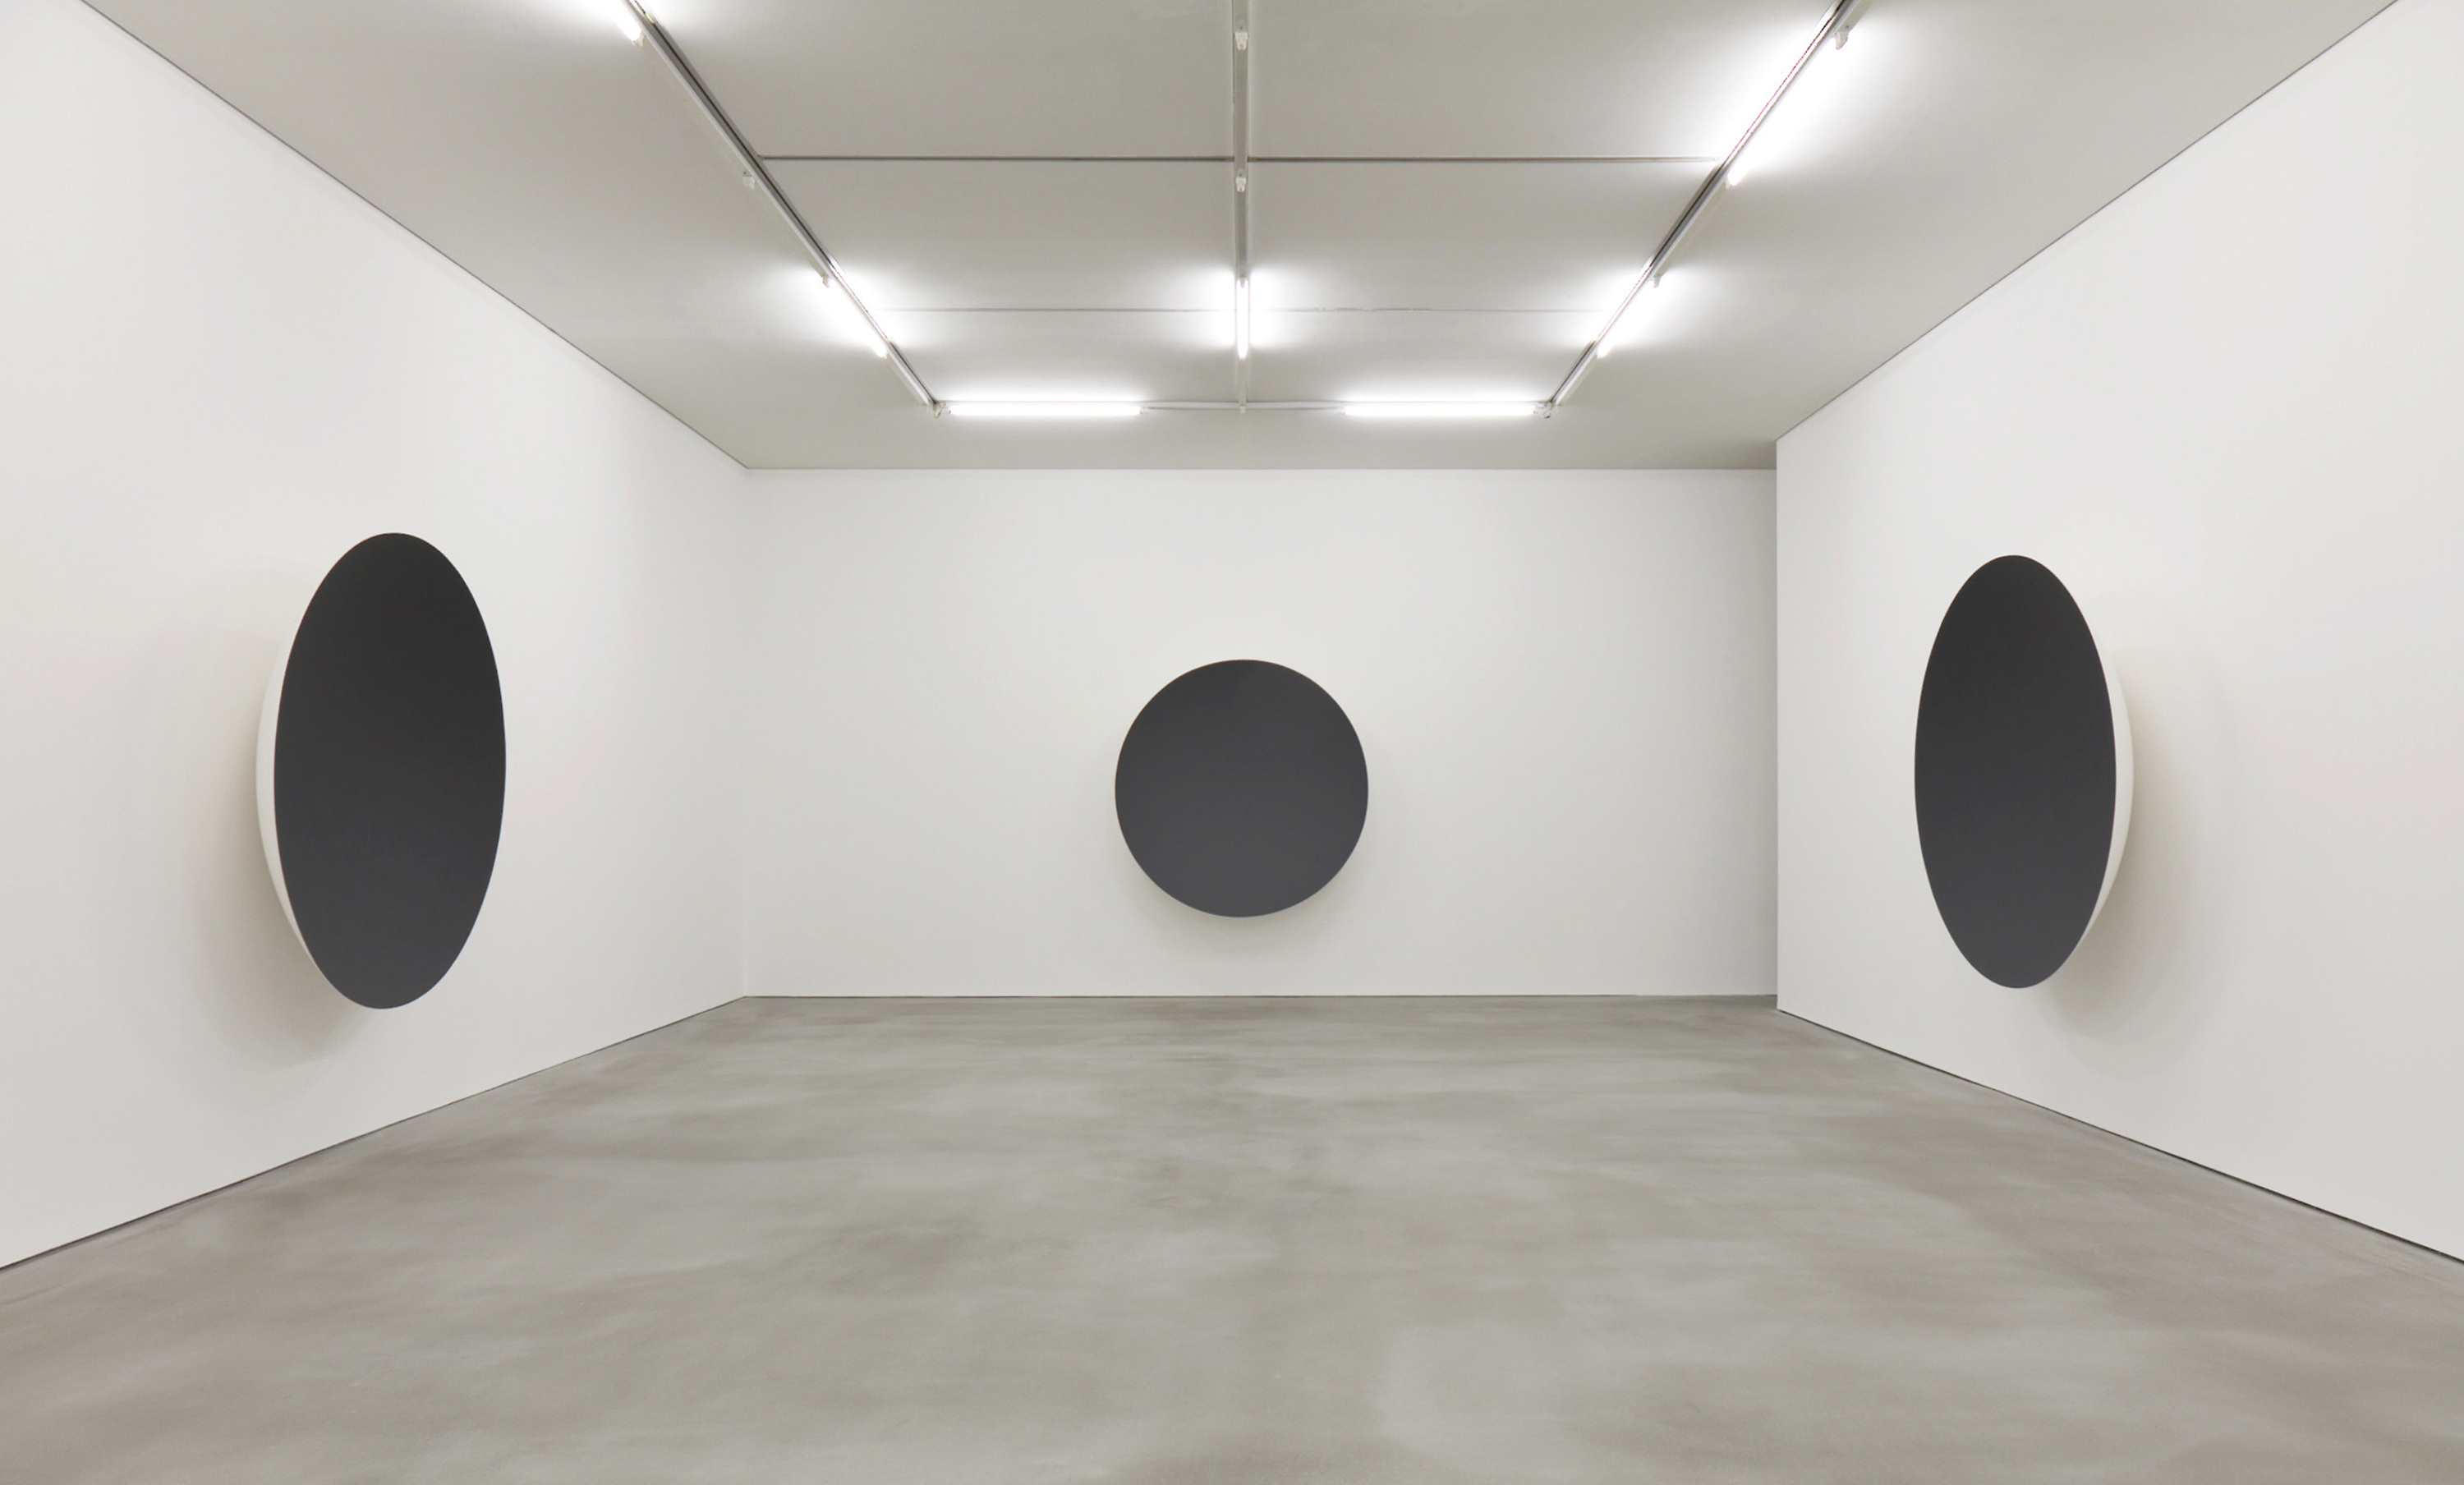 Image: Exhibition view, Anish Kapoor, Gathering Clouds, 2016. Exhibition view. Photo: Keith Park. Courtesy Kukje Gallery, Seoul.